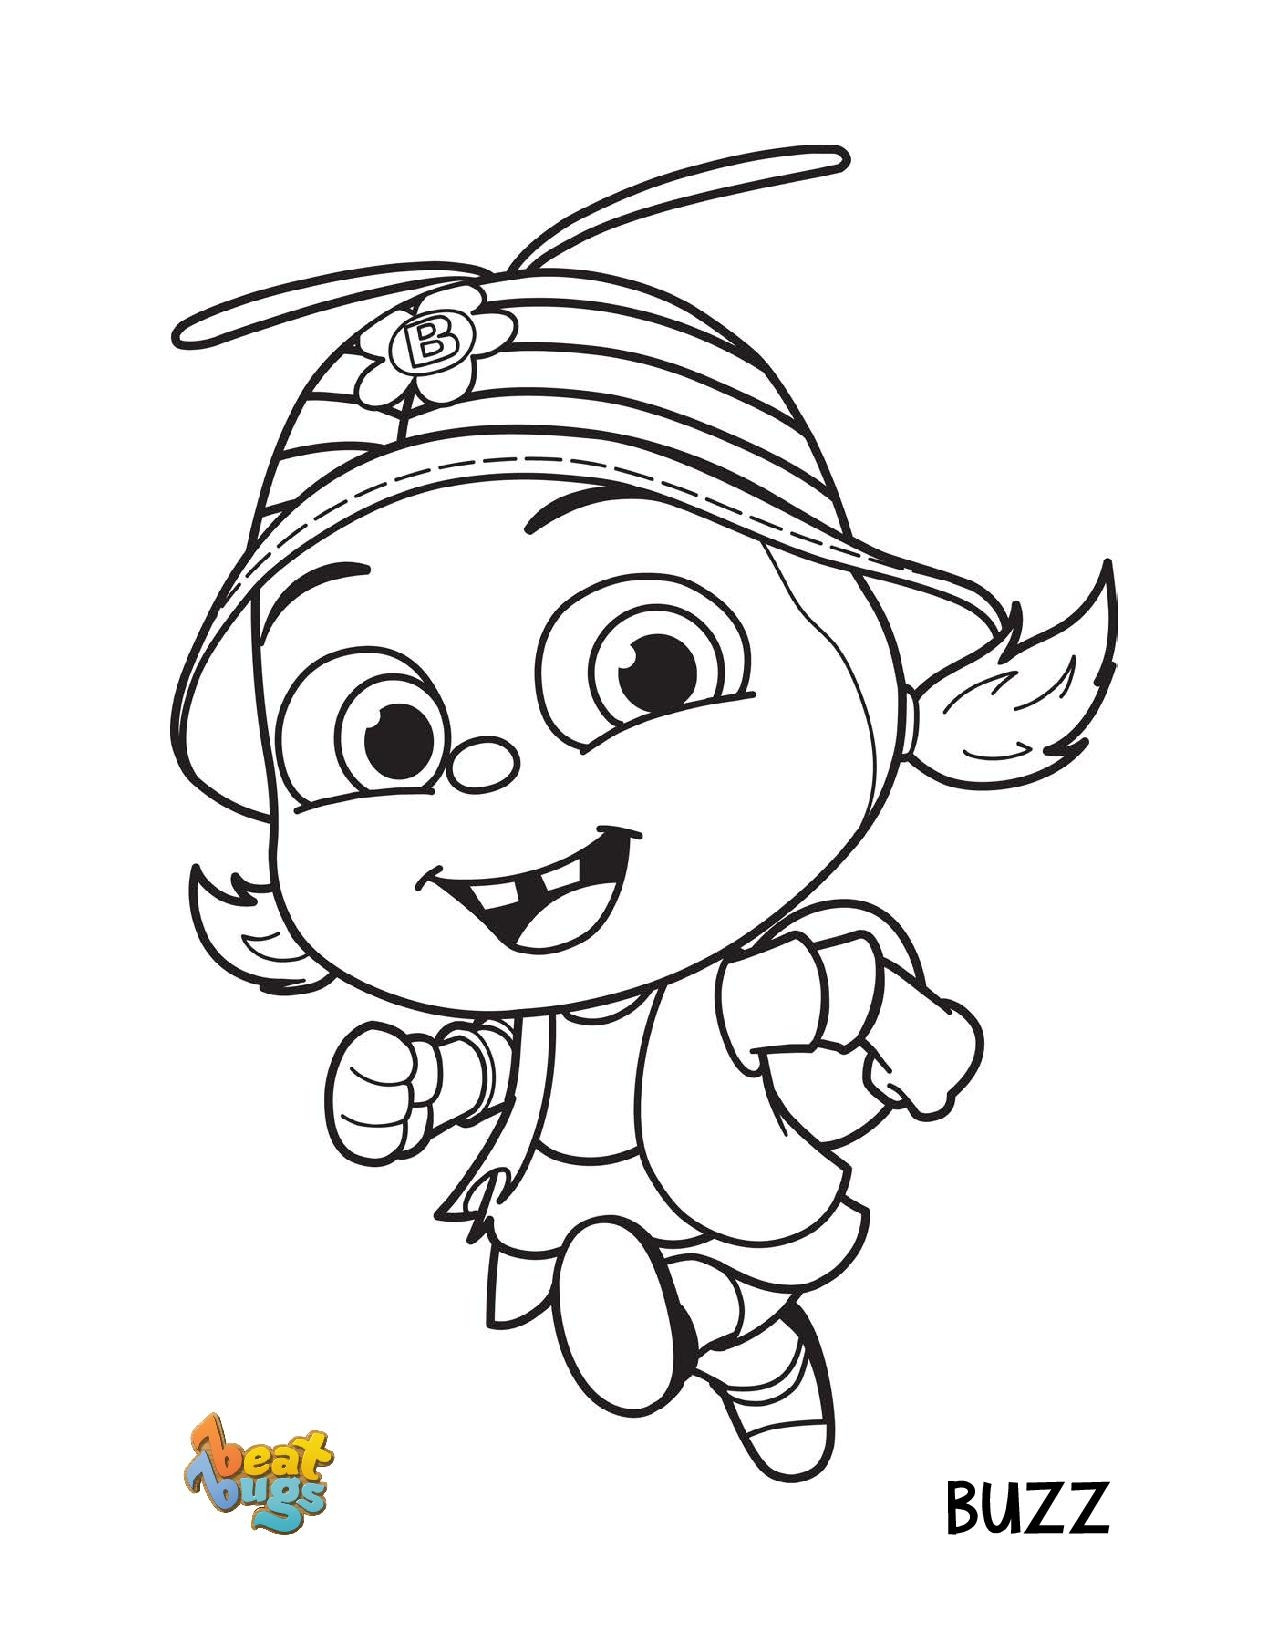 1275x1650 Goosebumps Coloring Pages Lovely Fresh Buzz From Beat Bugs